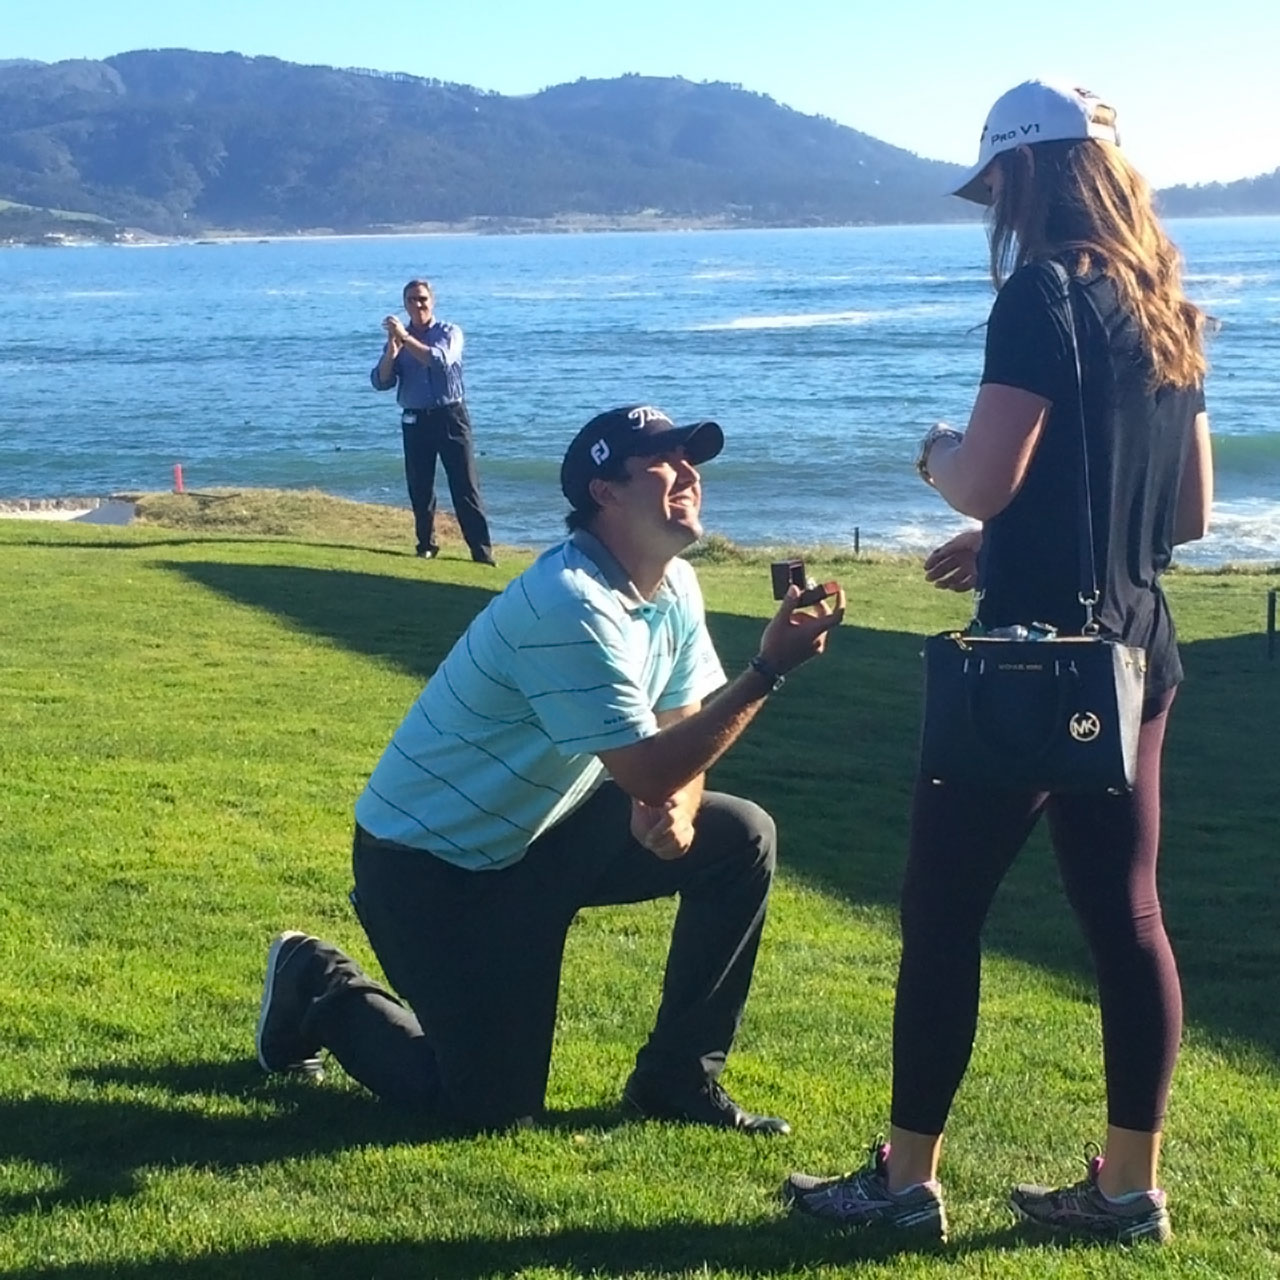 PGA Tour golfer Mark Hubbard makes marriage proposal at Pebble Beach